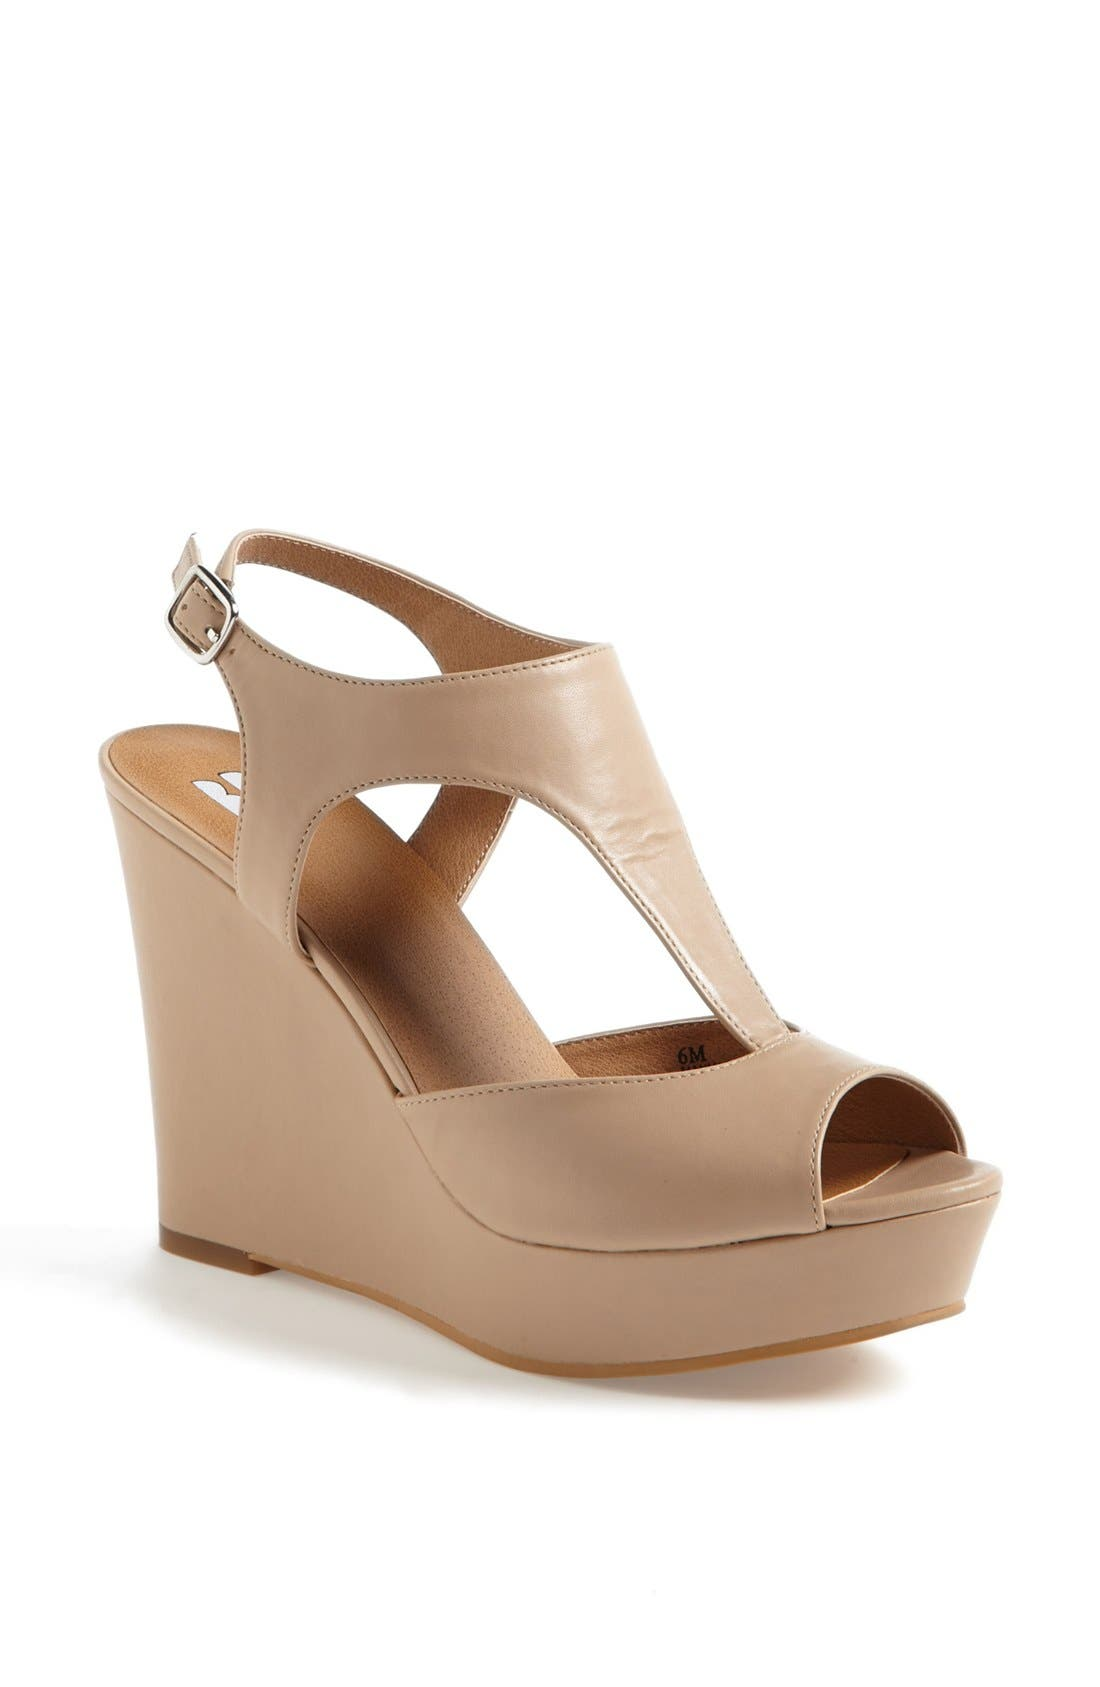 Alternate Image 1 Selected - BP. 'Springs' Wedge Sandal (Women)